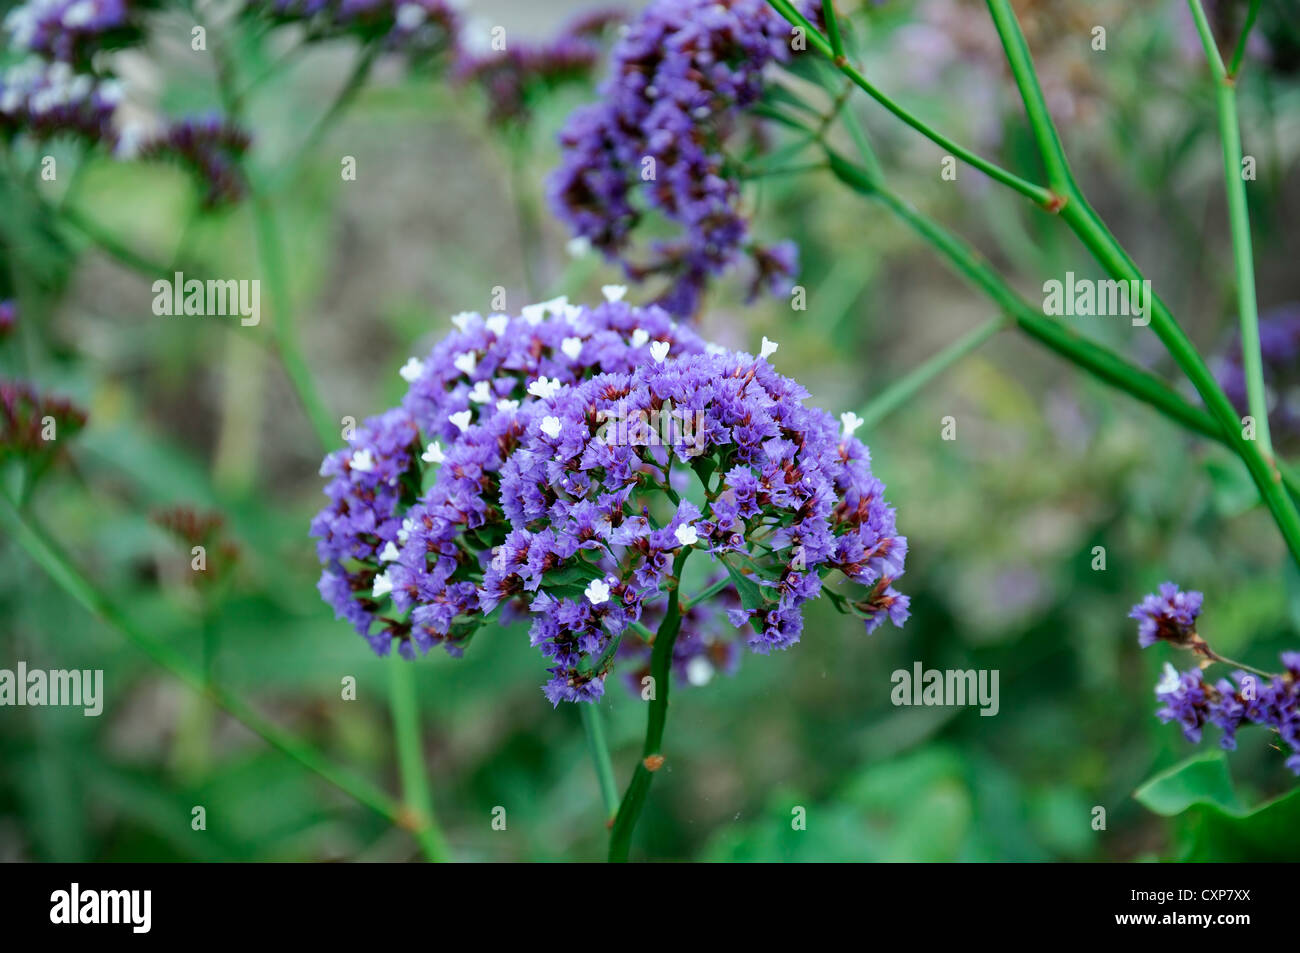 limonium arborescens blue sea lavender tree limonium tree statice blue flowers flowering bloom blossom - Stock Image